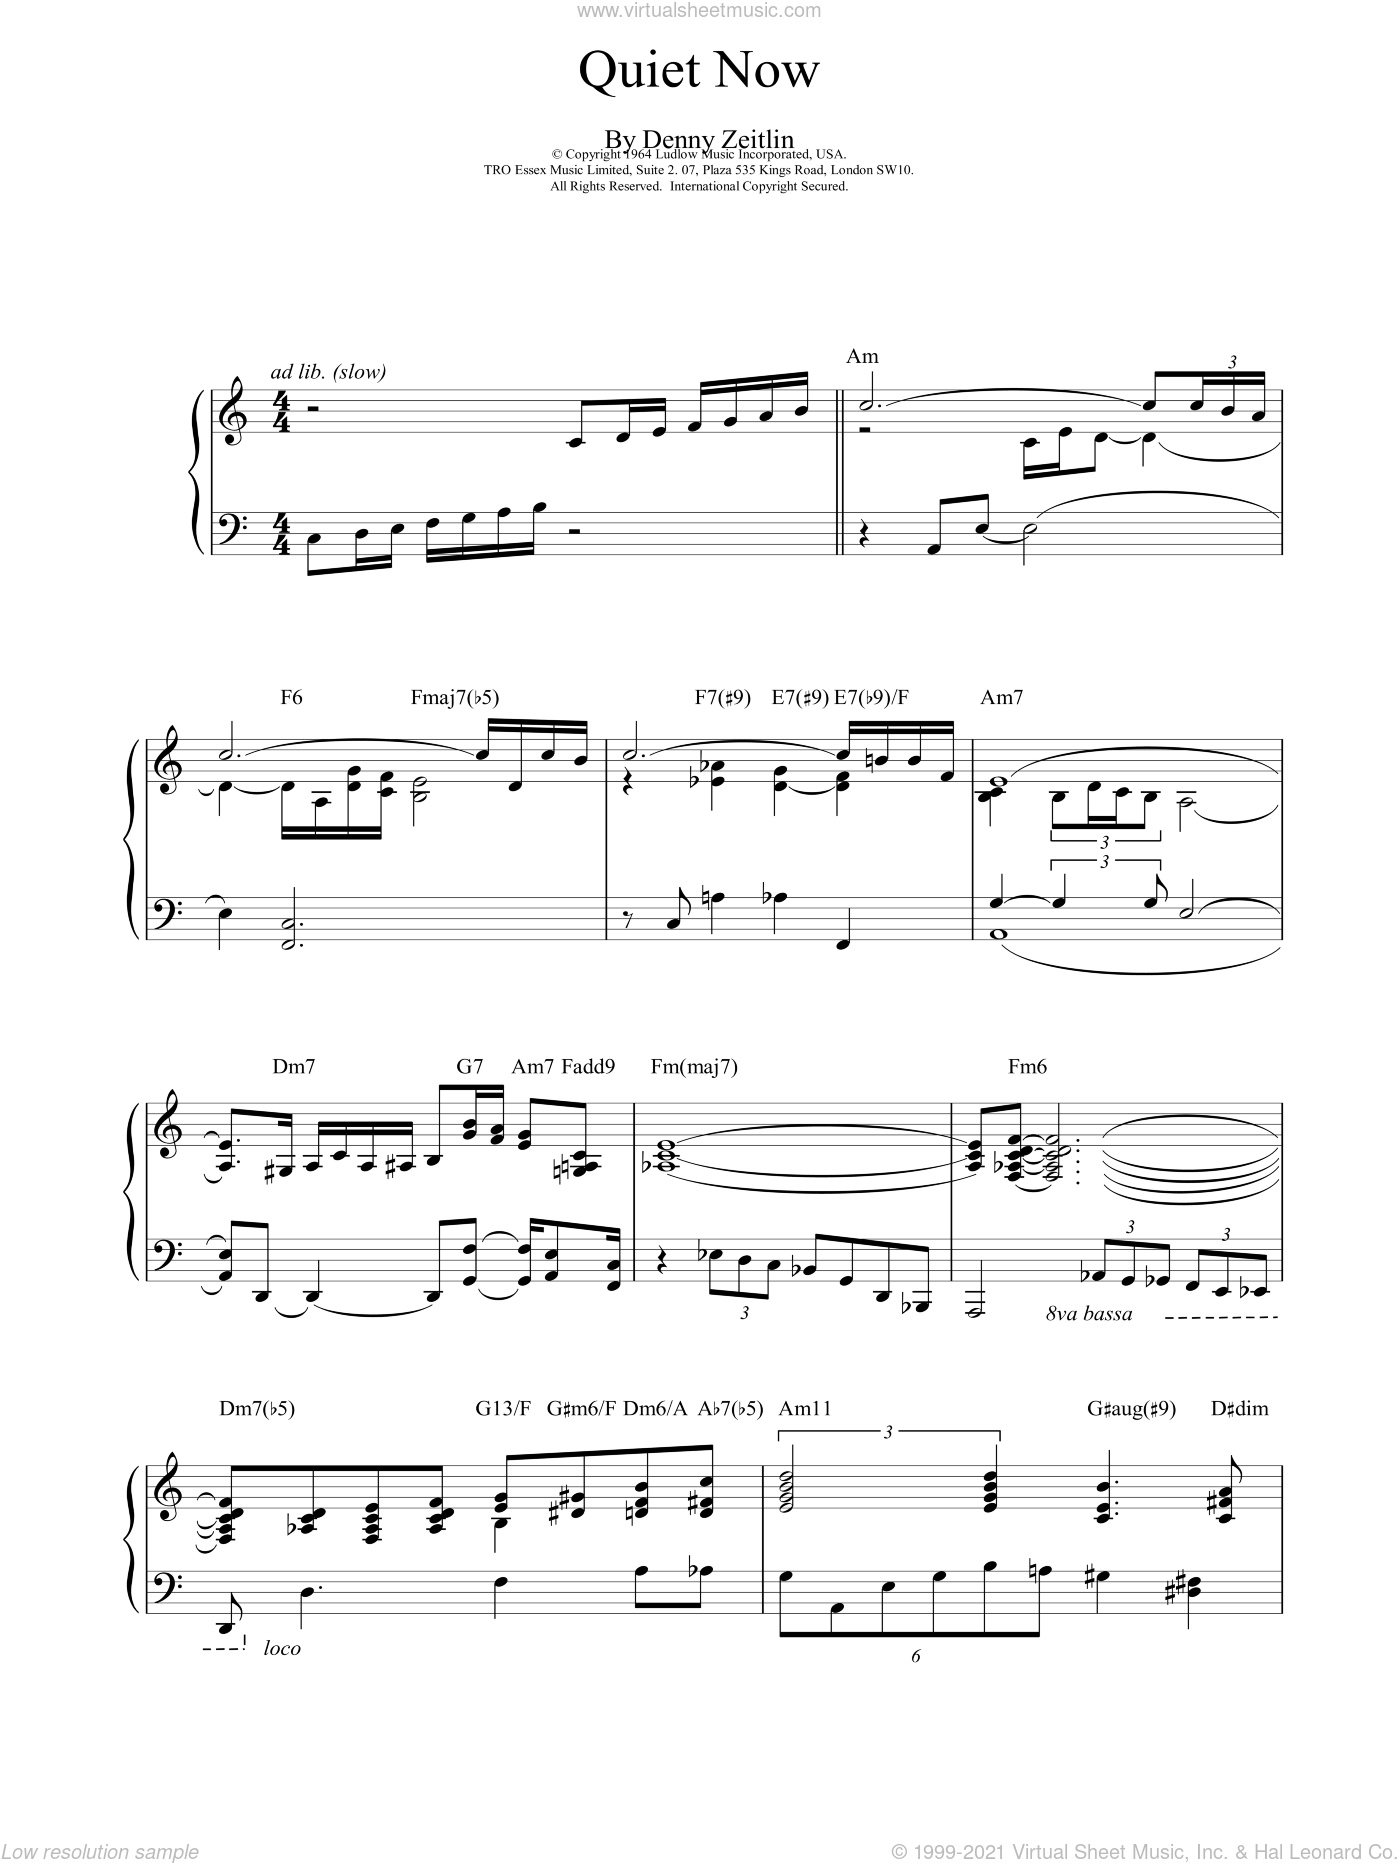 Quiet Now sheet music for piano solo by Bill Evans, intermediate skill level